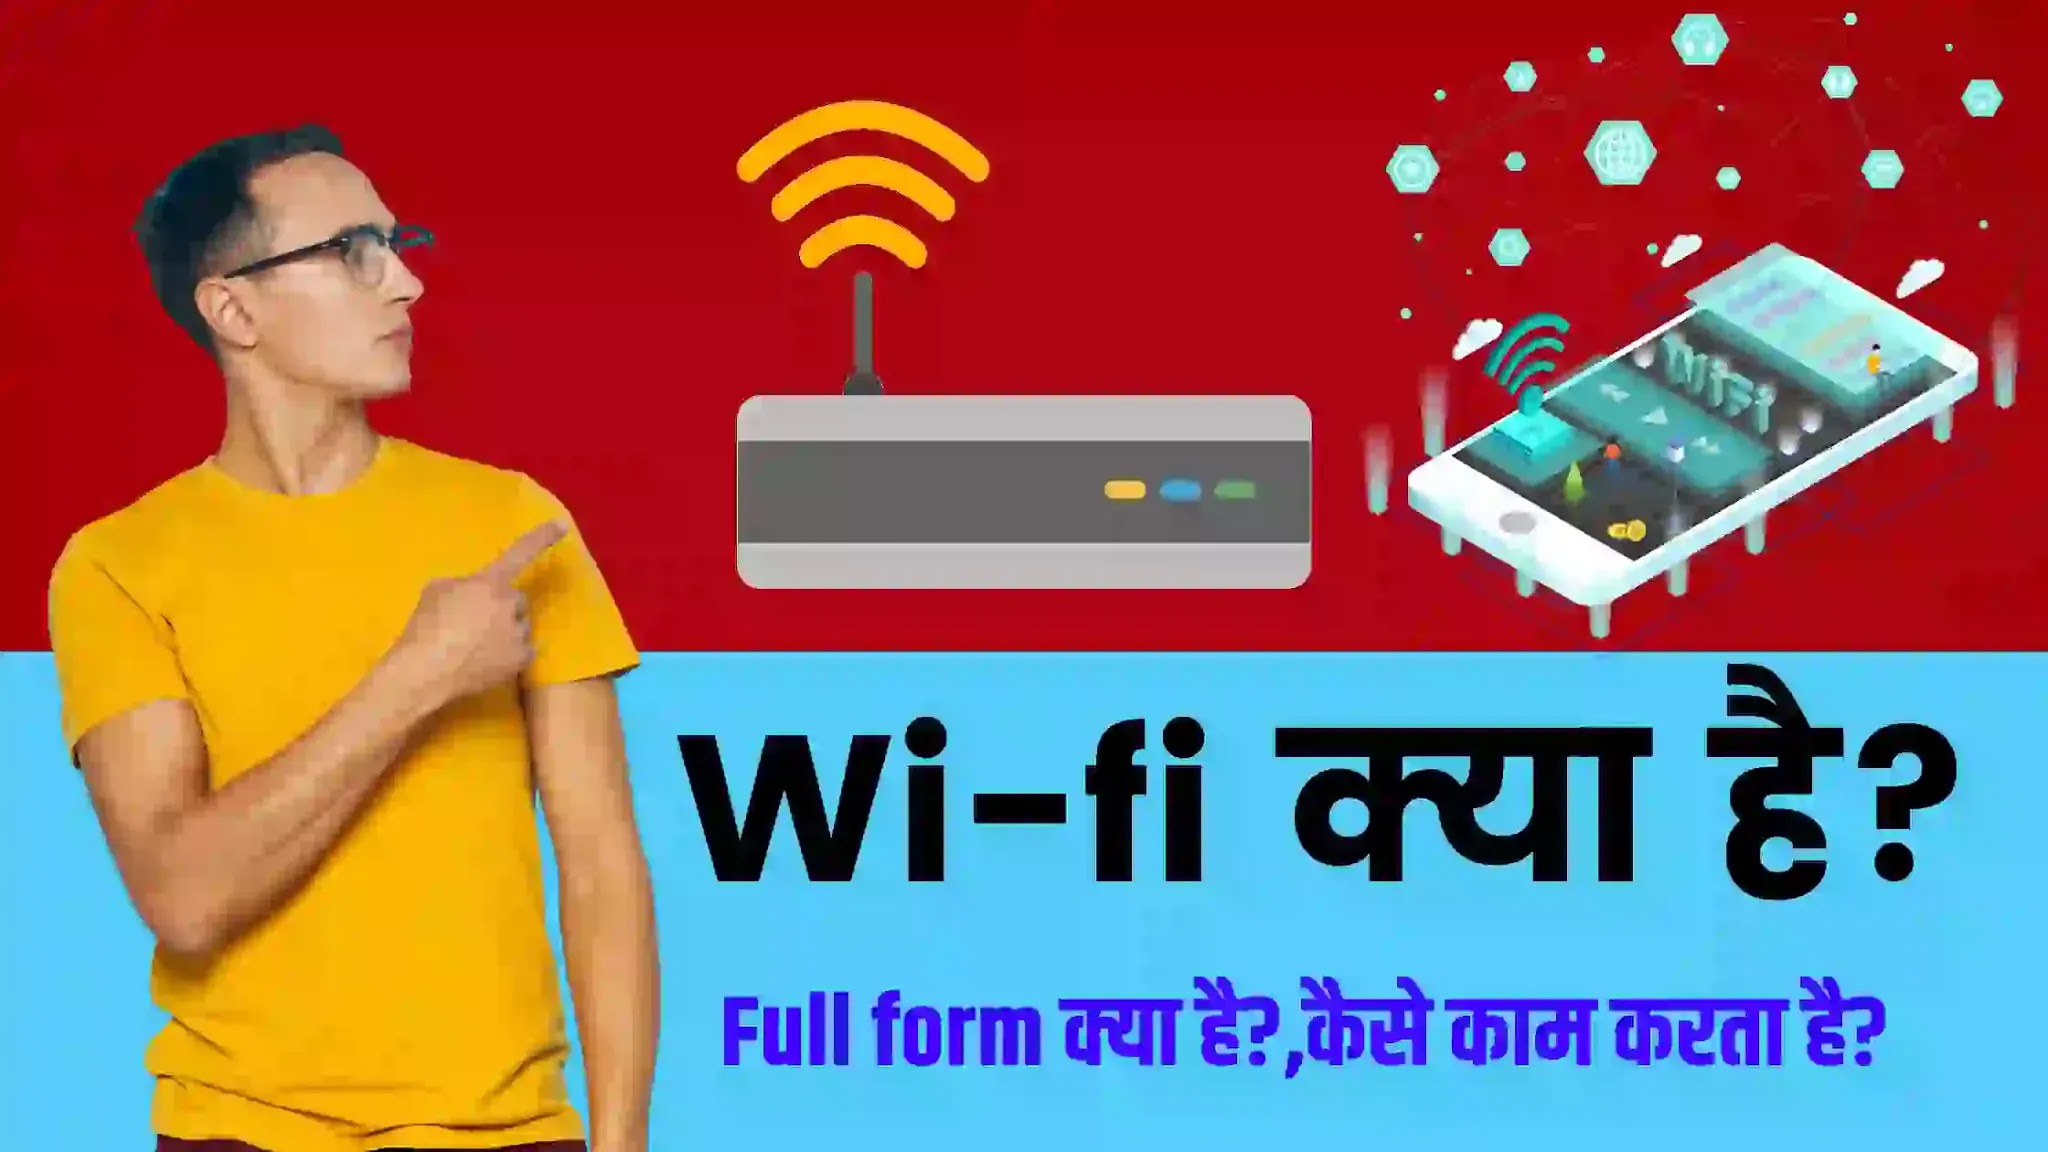 system, data, phone, search,Wi-fi क्या है, full form of wifi, Advantages of Wi-fi, free Wi-fi, computer, address, range, sharing, definition, access, लोगों, technology, connection, diagram, Hotspot, network, Bluetooth,